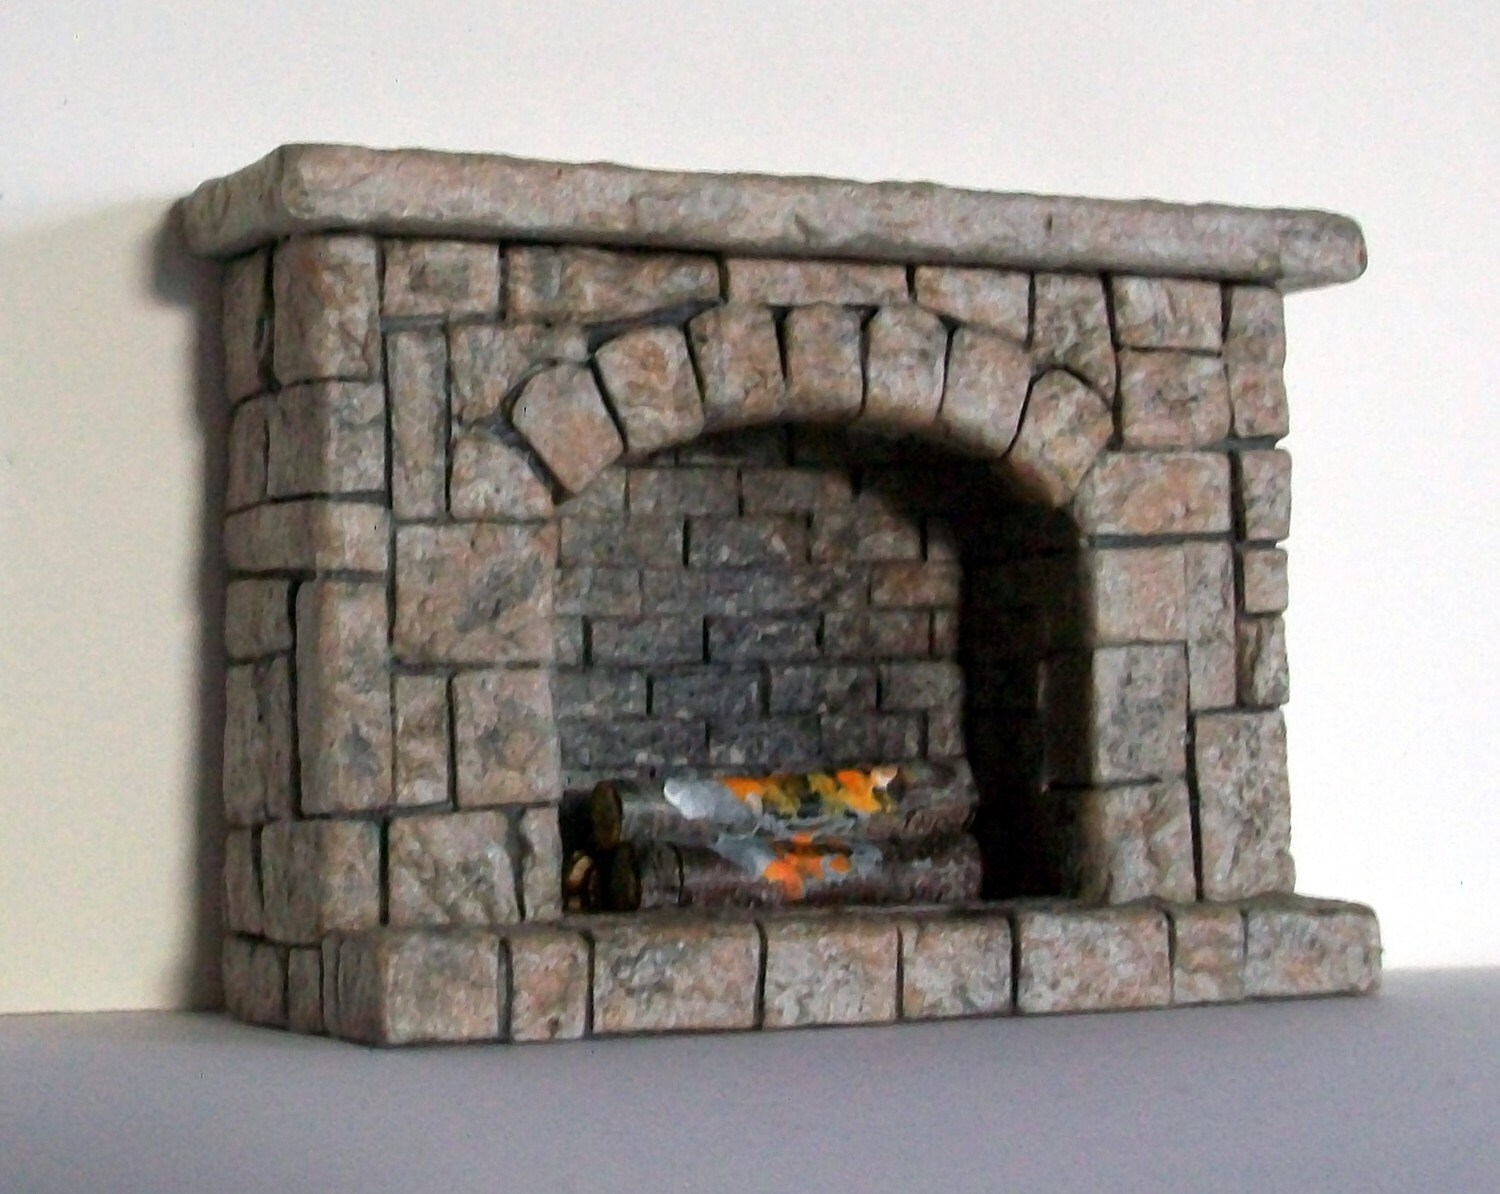 Tiny stonework fireplace half inch dollhouse scale for Fireplace half stone